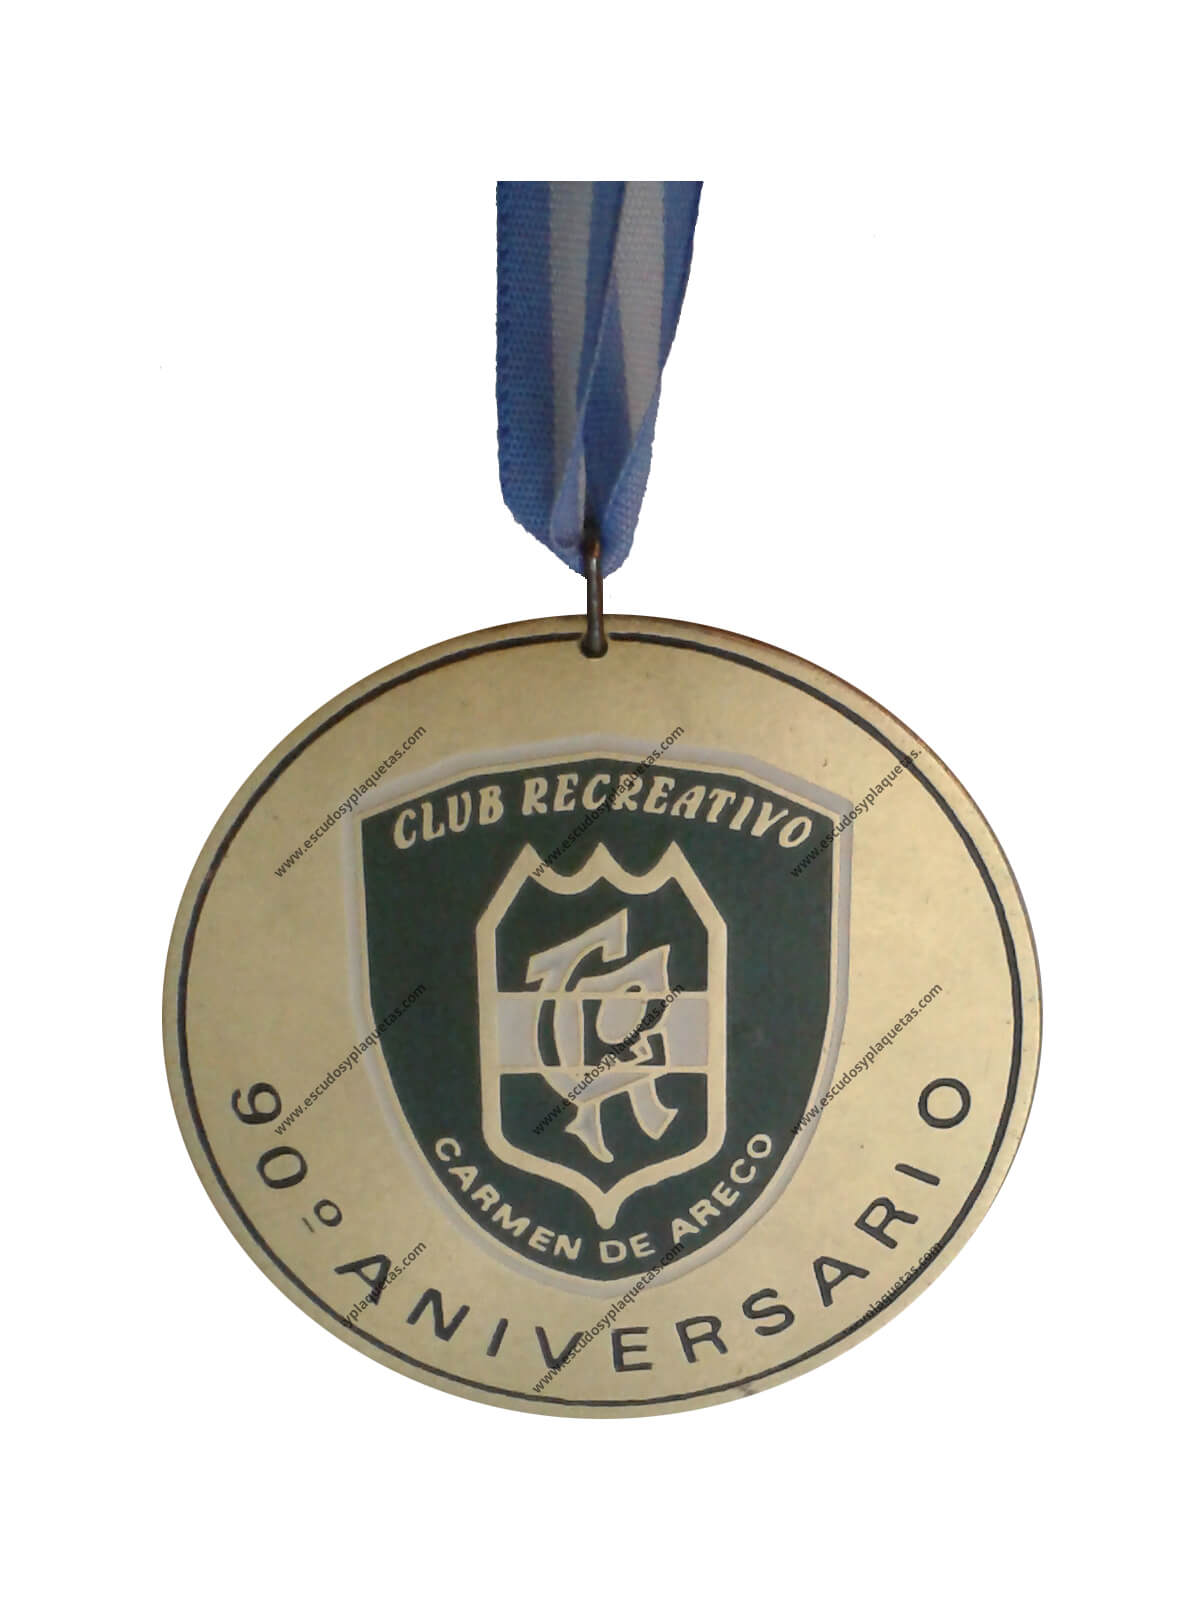 Medalla club recreativo Carmen de Areco